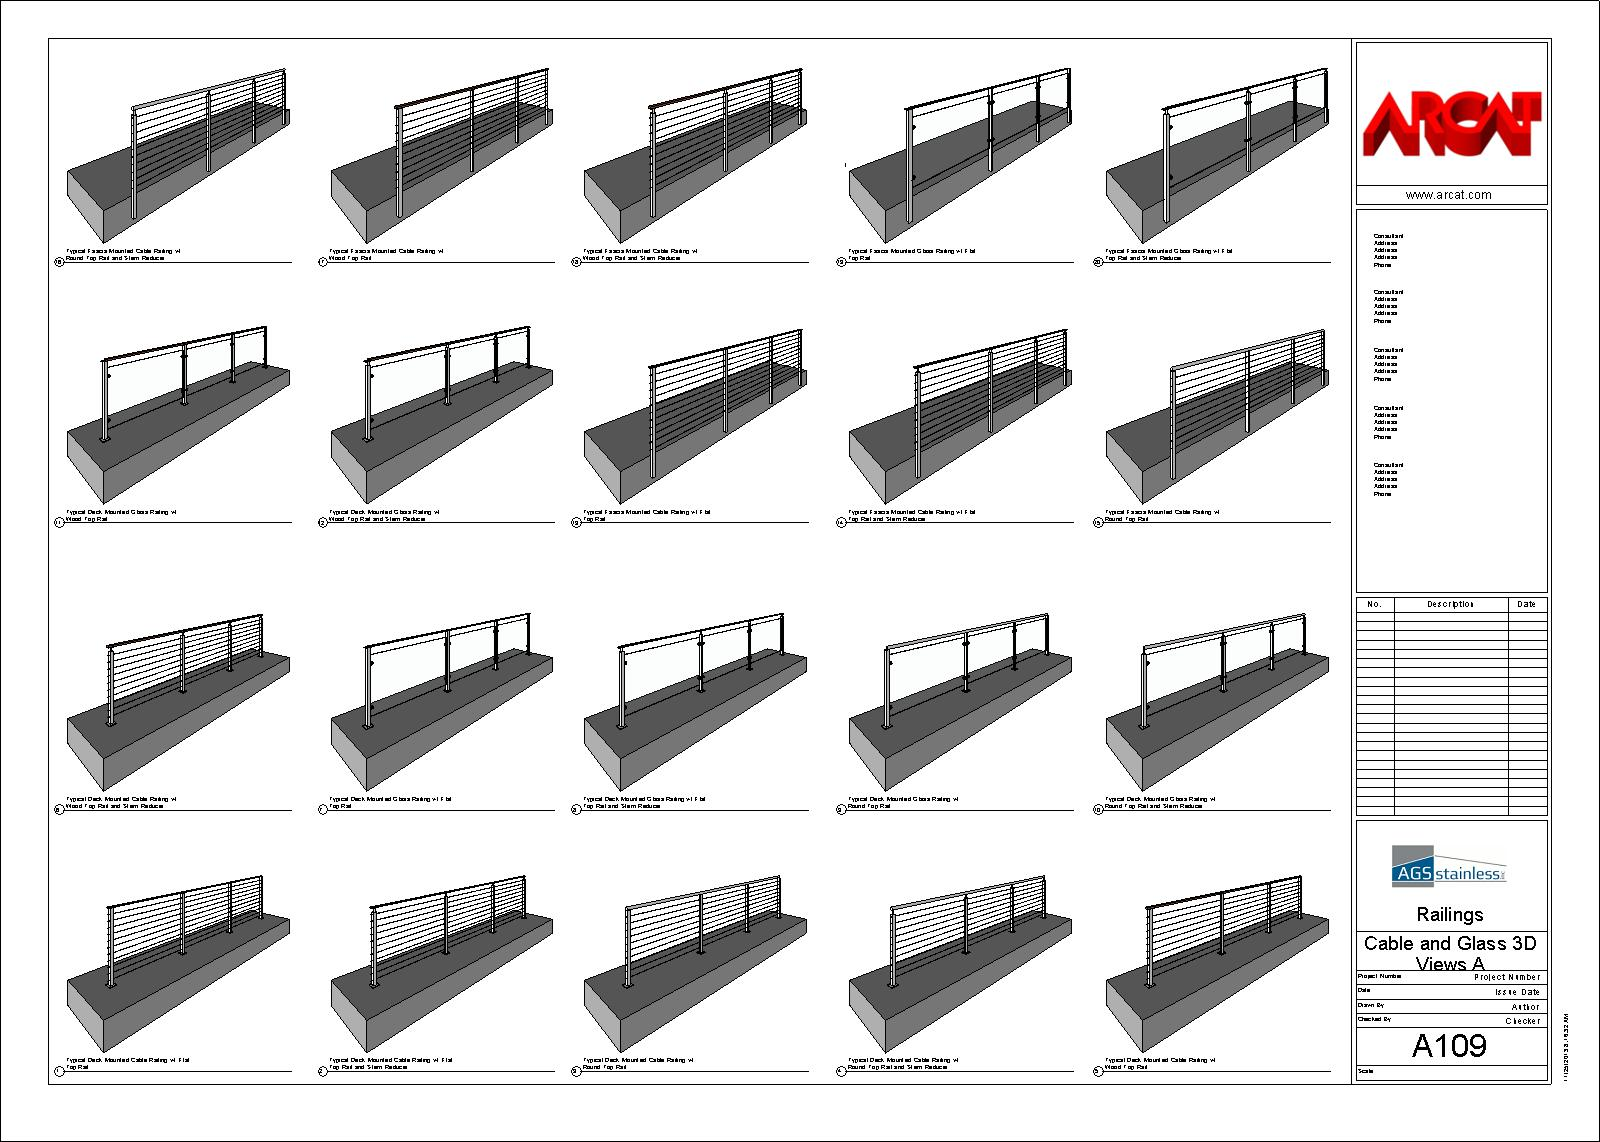 Decorative Metal Railings - Metals - Free BIM Objects / Families | ARCAT